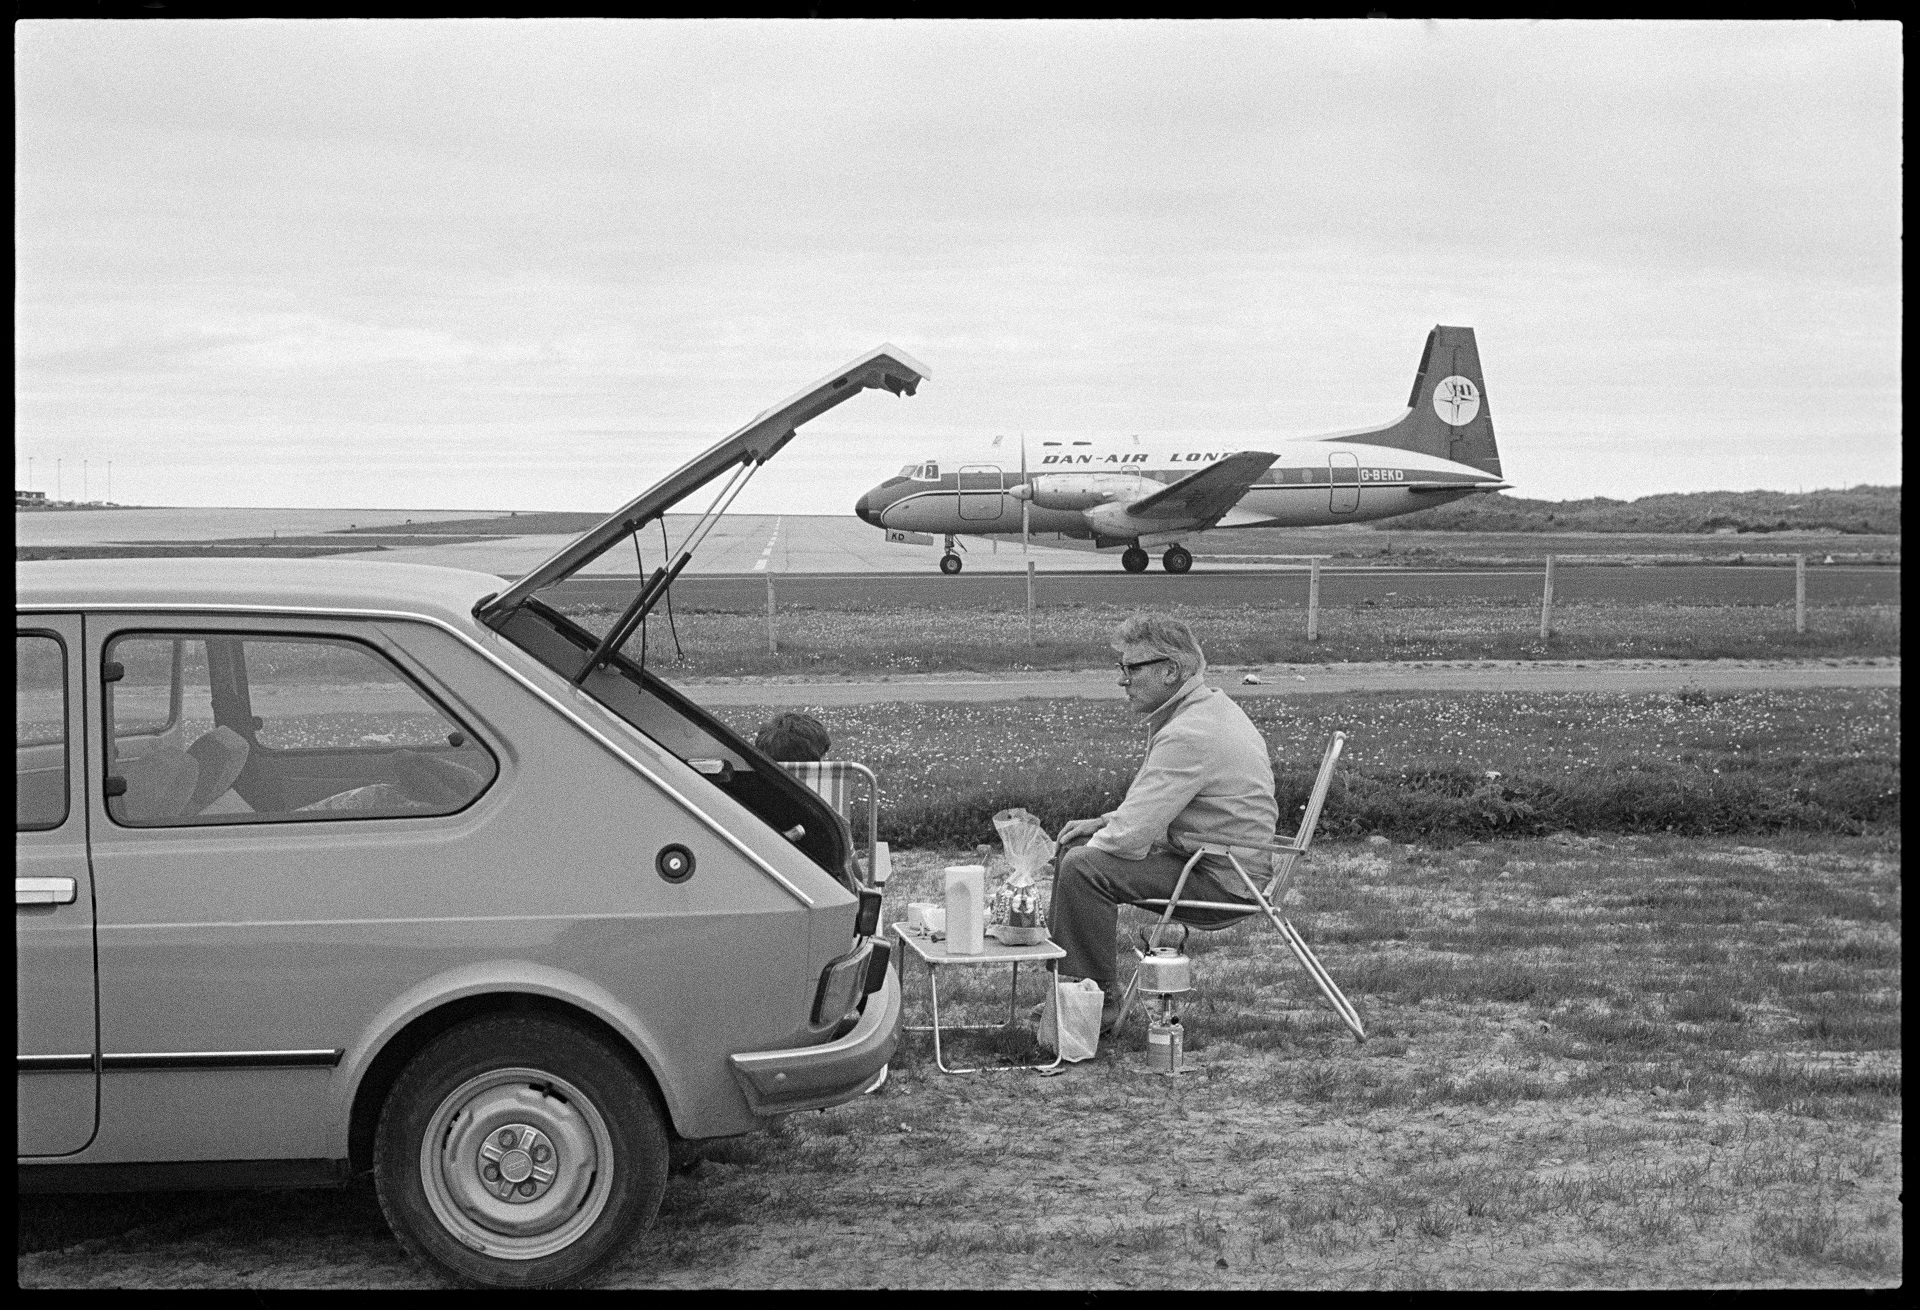 Image of Couple Picknicking Next to Sumburgh Airport by Tom Kidd